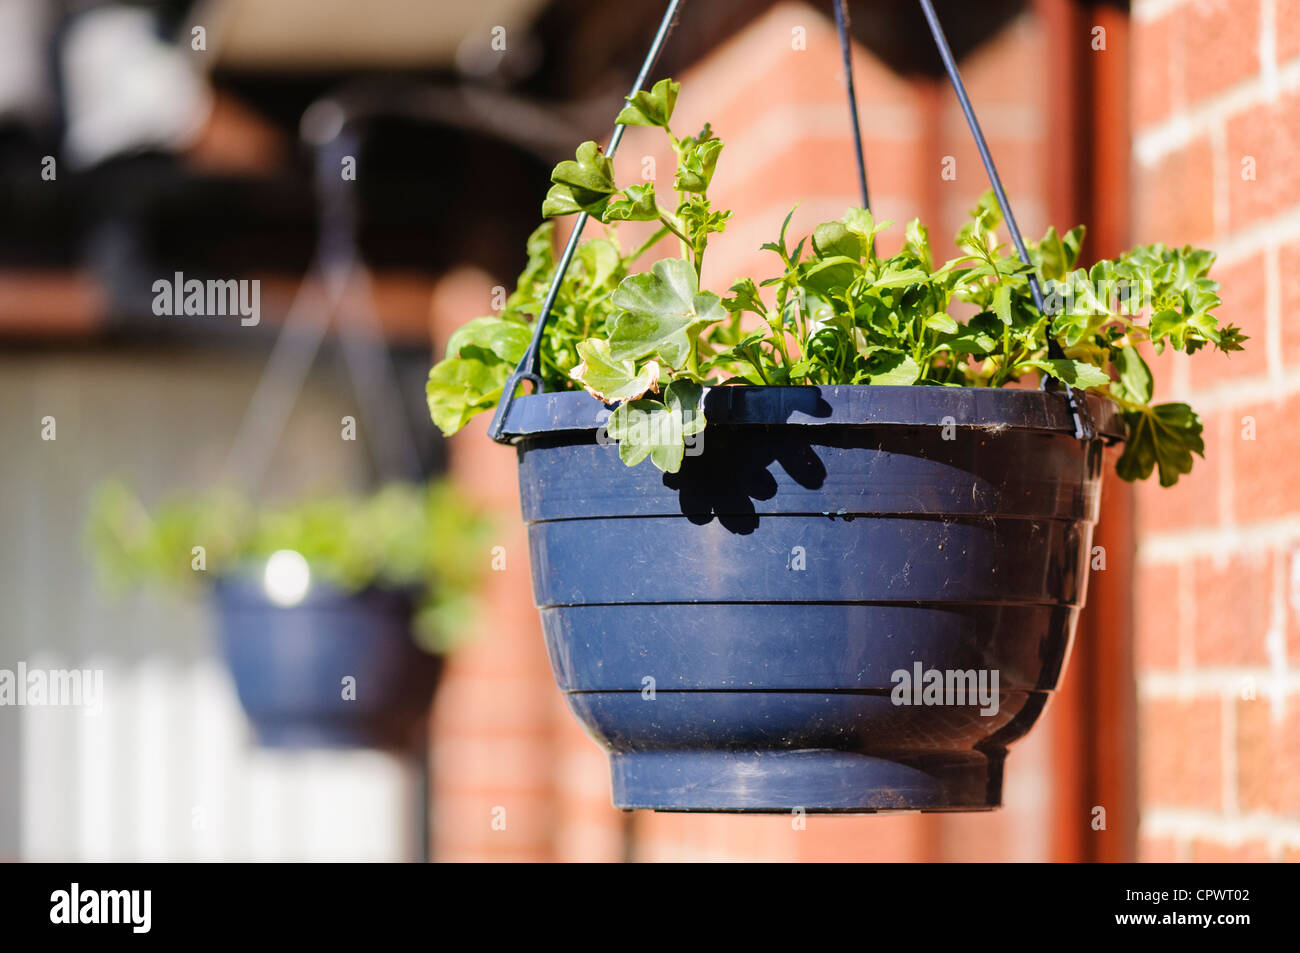 Newly planted geraniums in hanging baskets - Stock Image